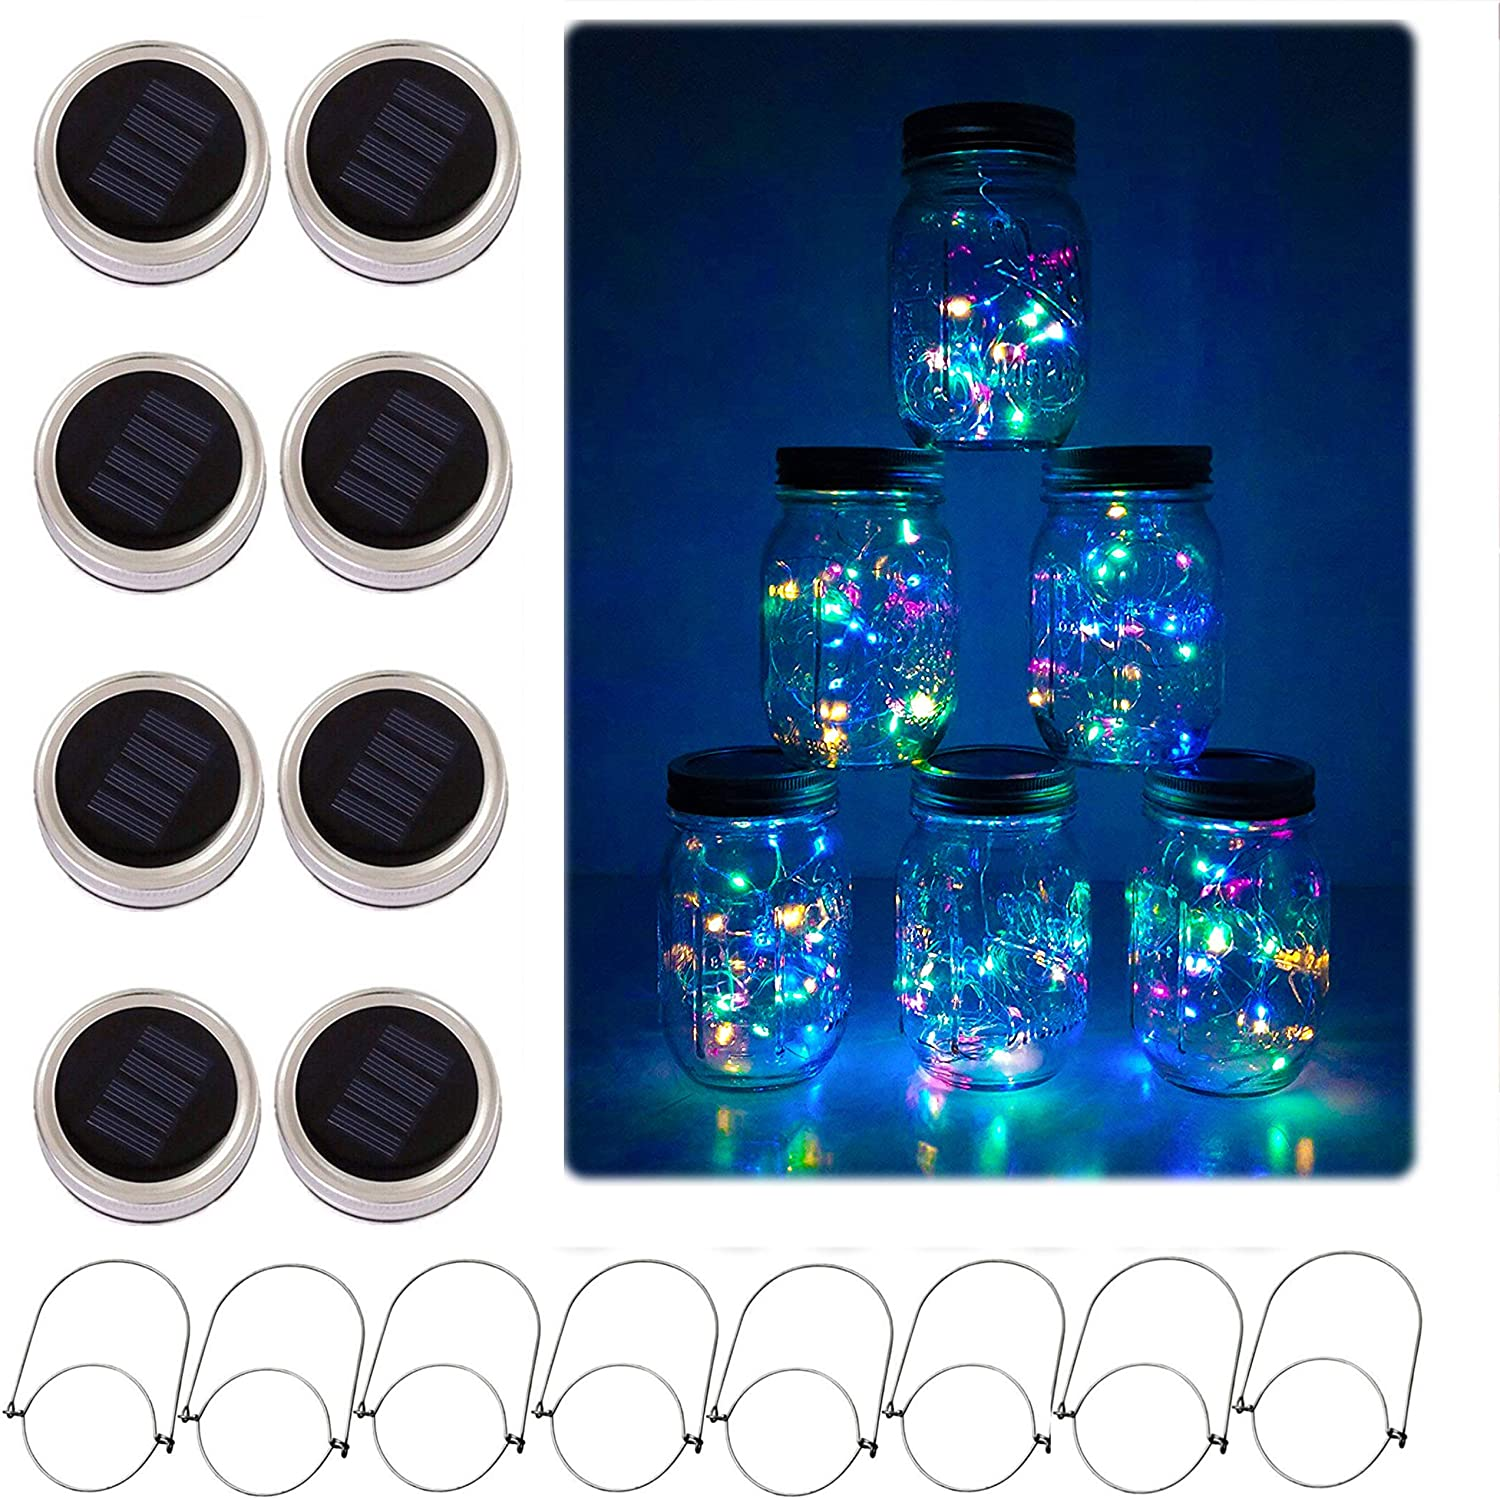 Solar Mason Jar Lid String Lights, 8 Pack 20 Led String Fairy Star Firefly Jar Lids Lights with 8 Hangers Included (Jars Not Included), for Mason Jar Patio Garden Wedding Lantern (Colorful)